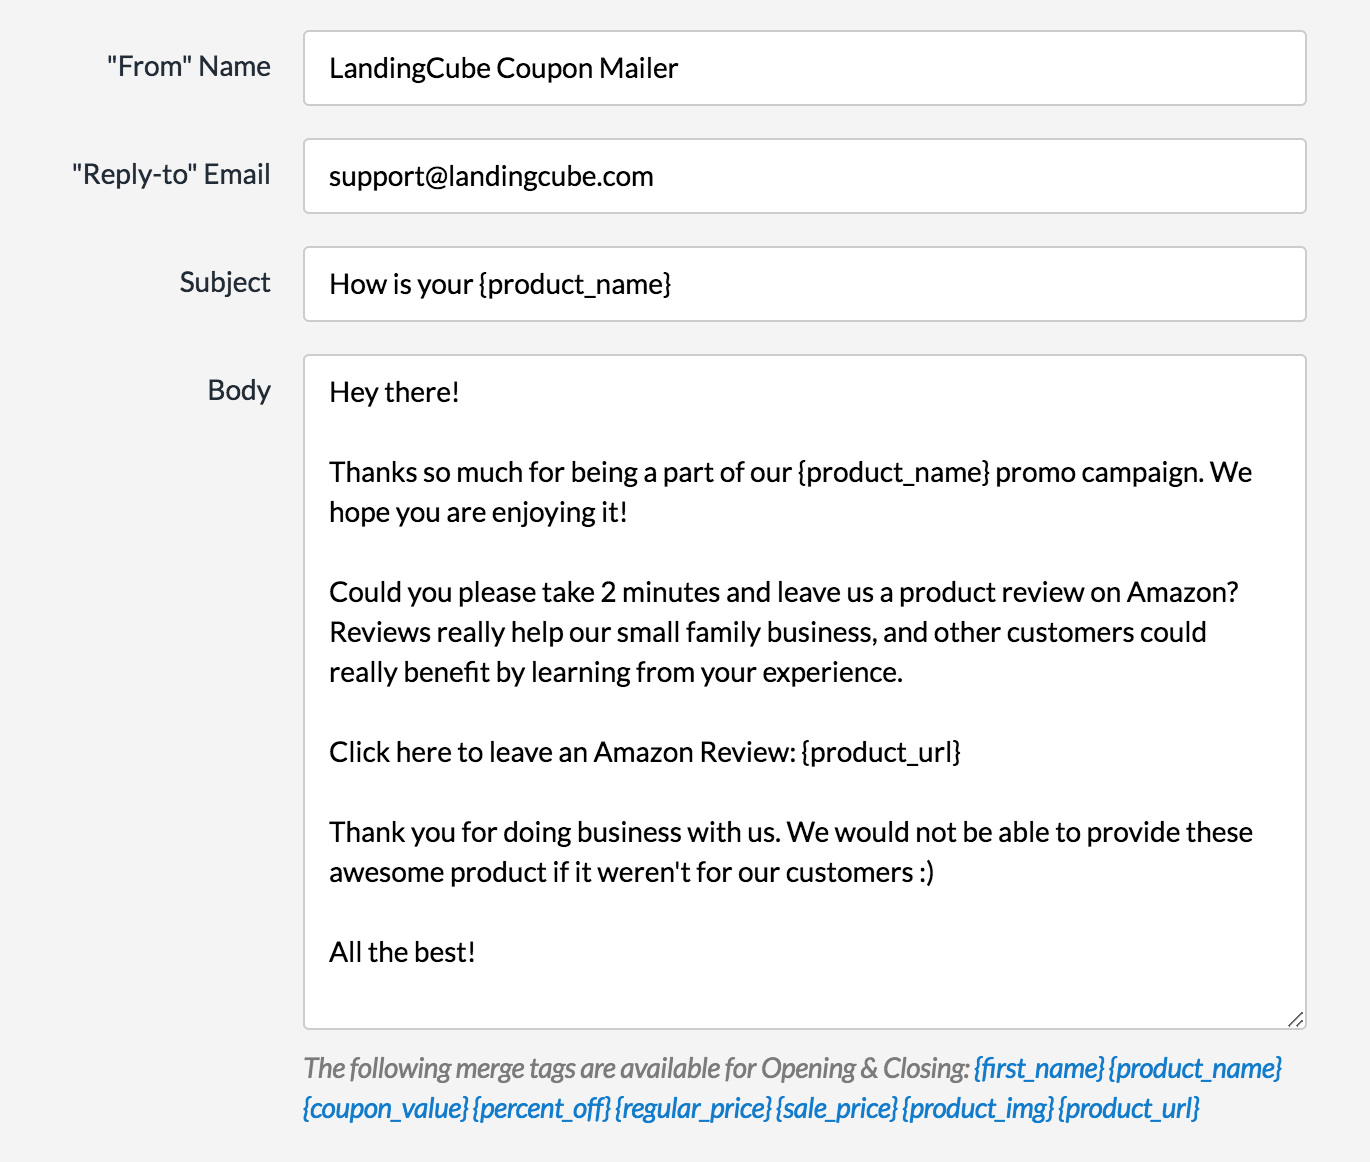 LandingCube follow-up email settings